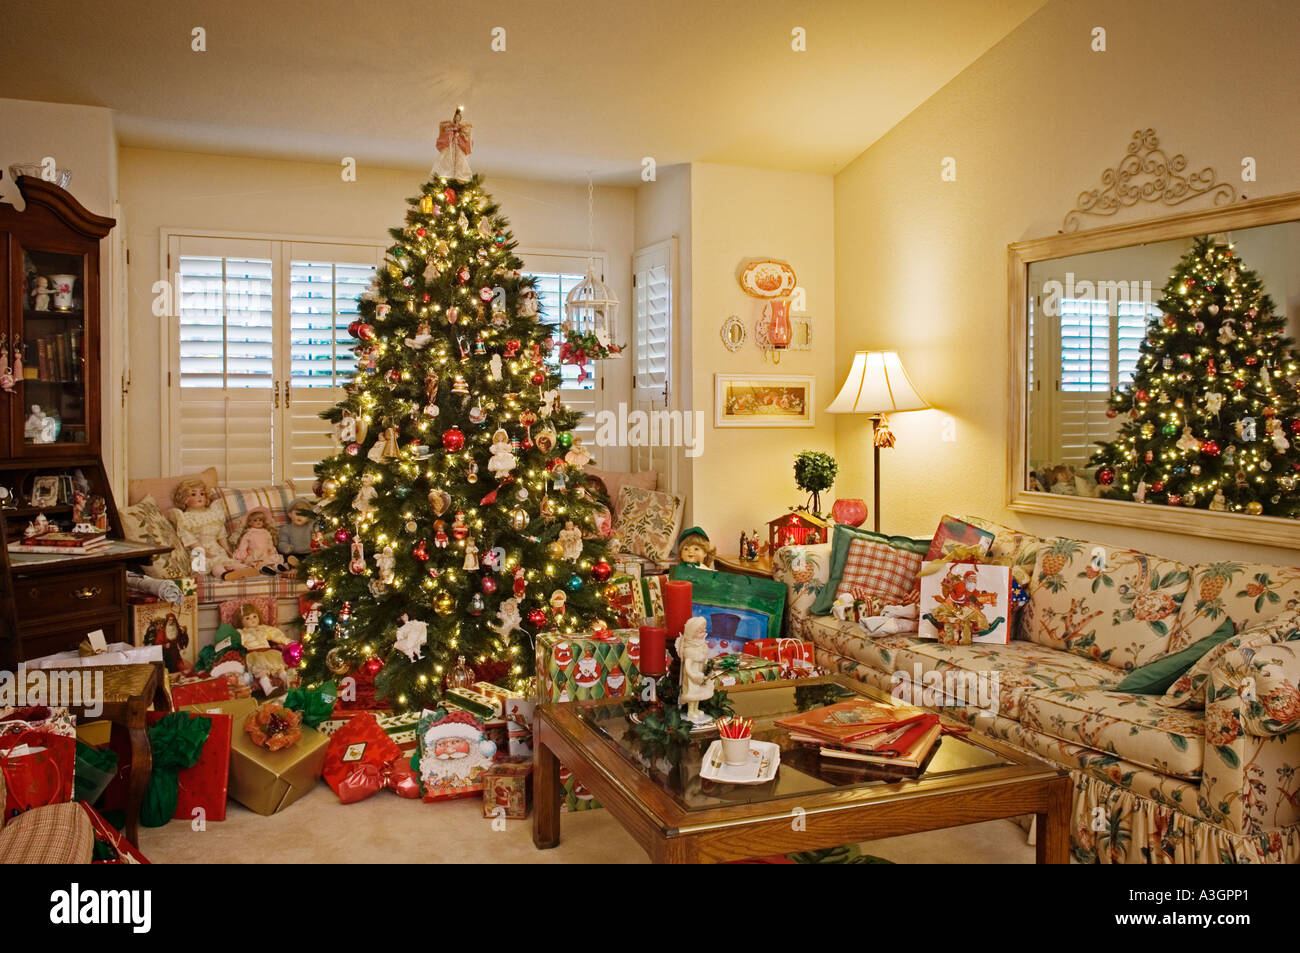 Christmas Tree In Living Room Mesmerizing Christmas Tree Decorations And Gifts In Living Room Of Upscale . 2017